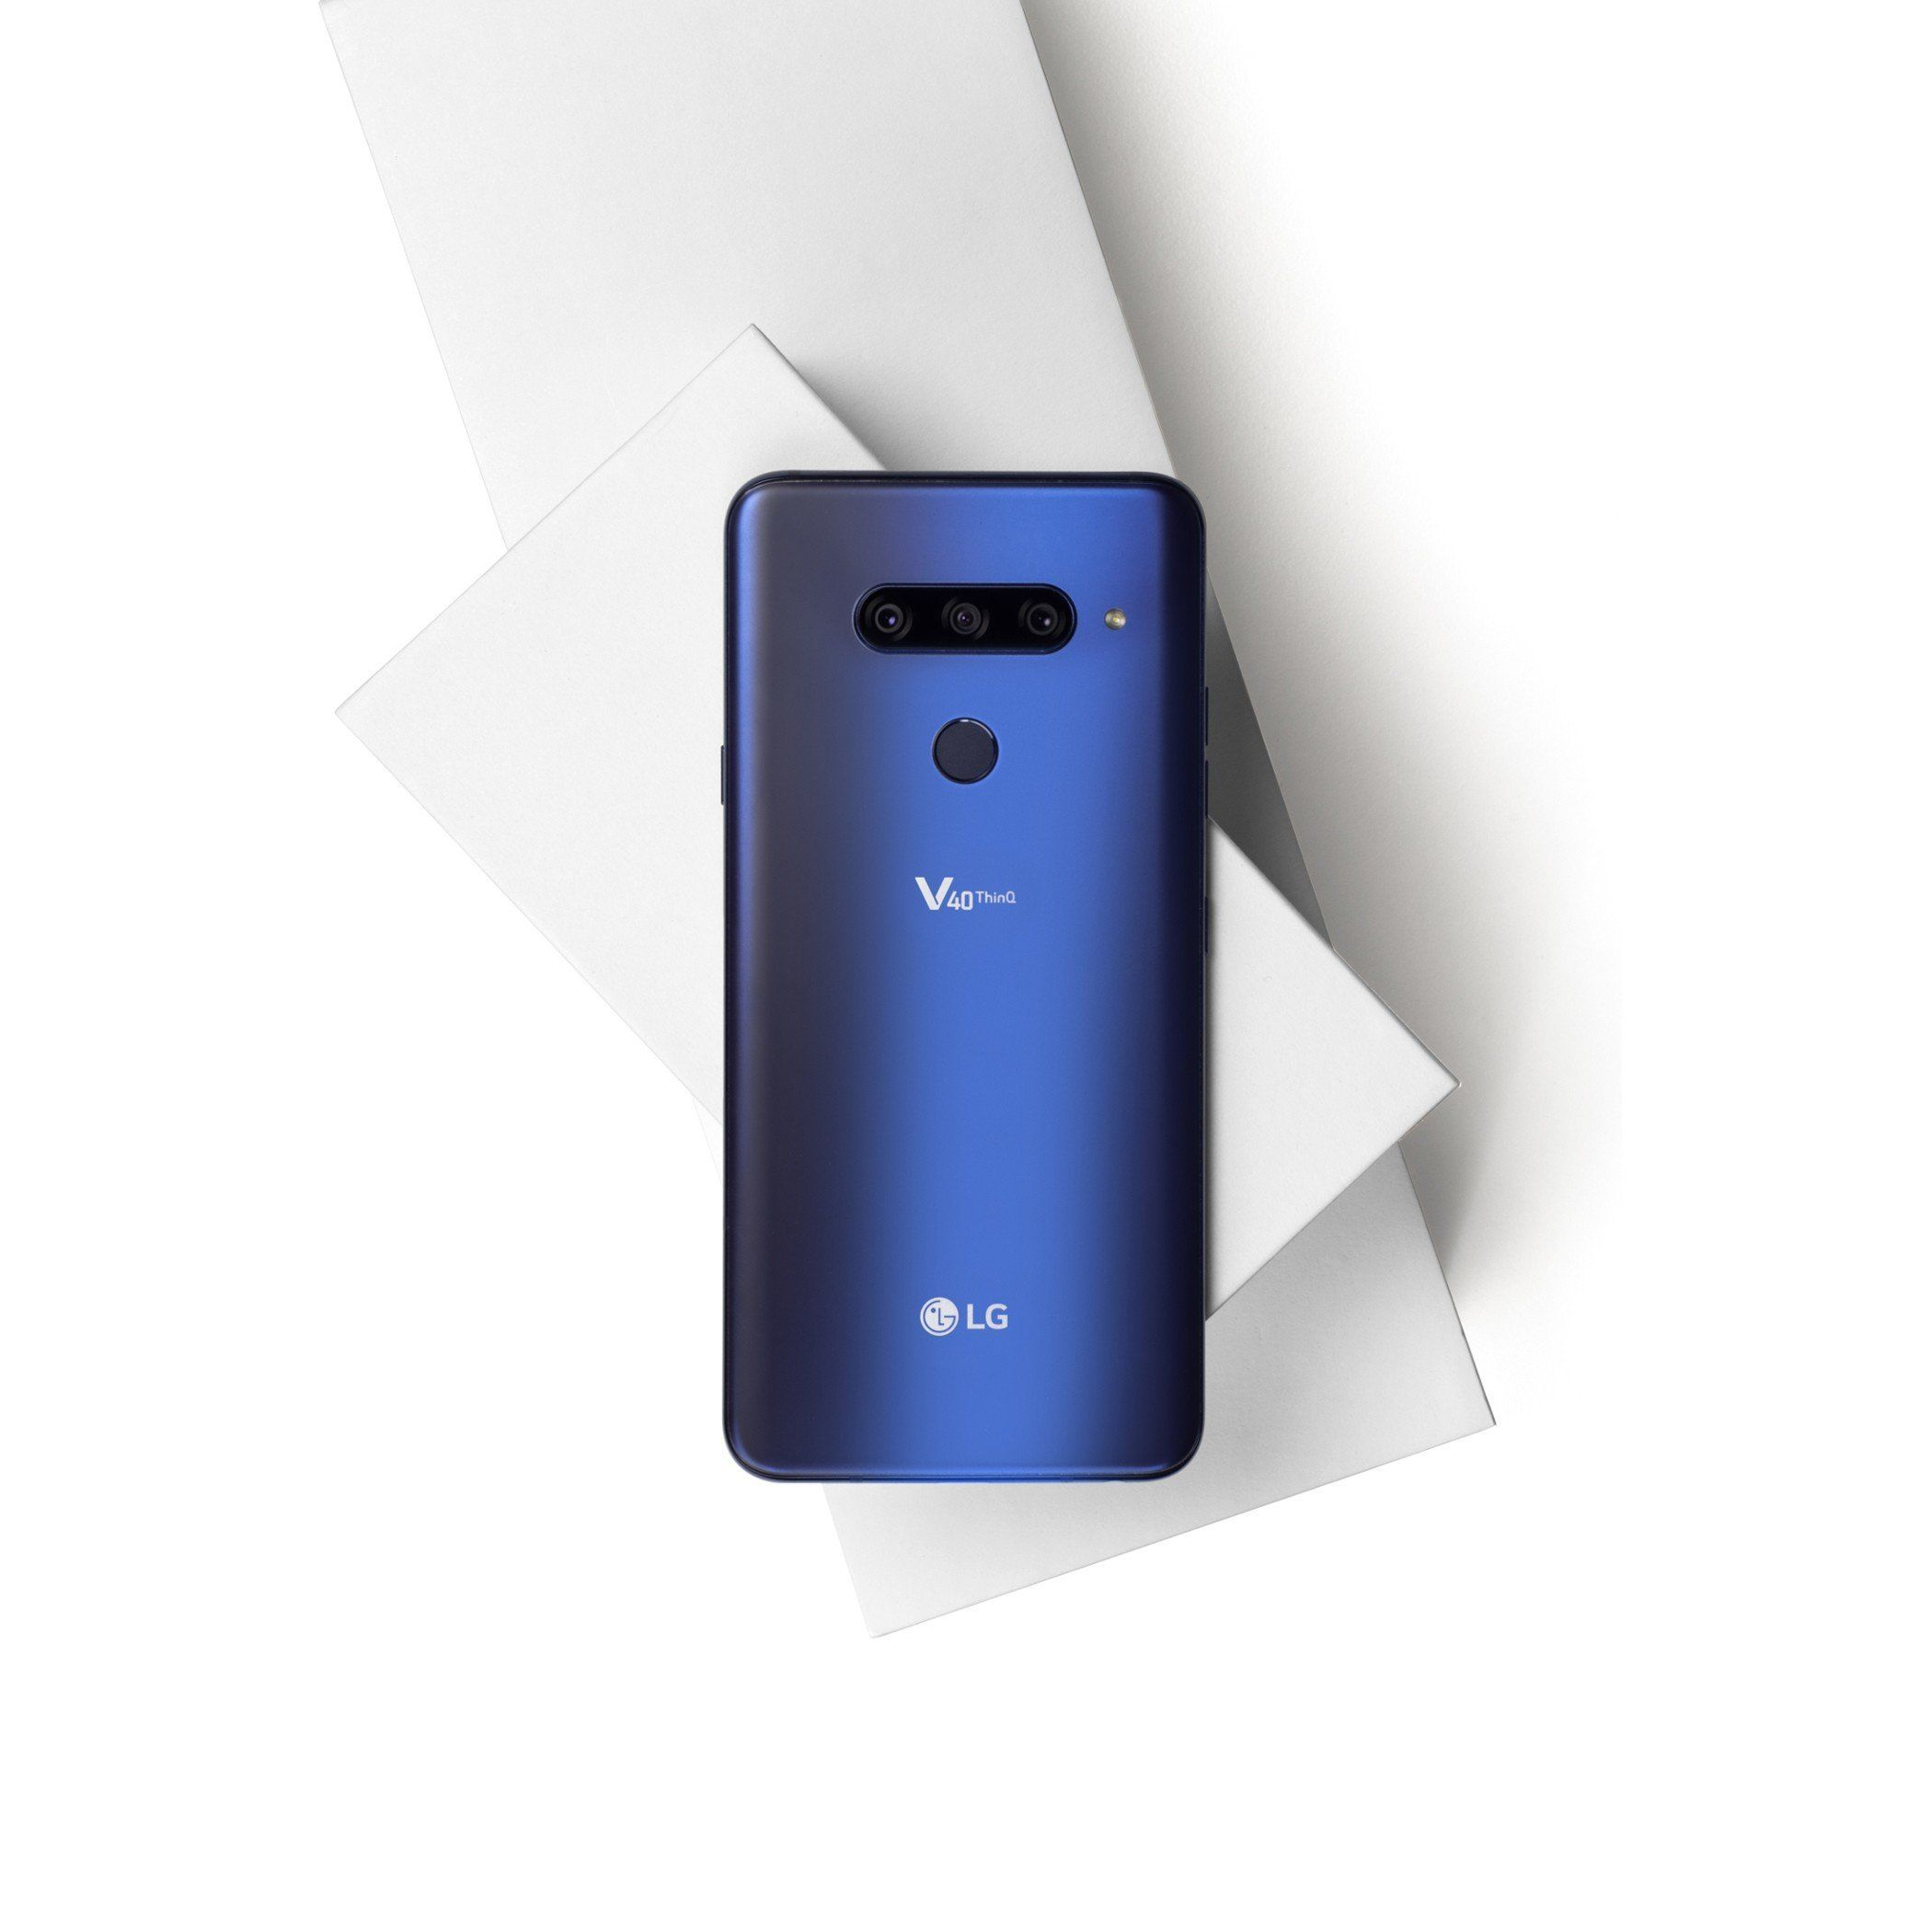 LG Unveils V40 ThinQ Smartphone With Five